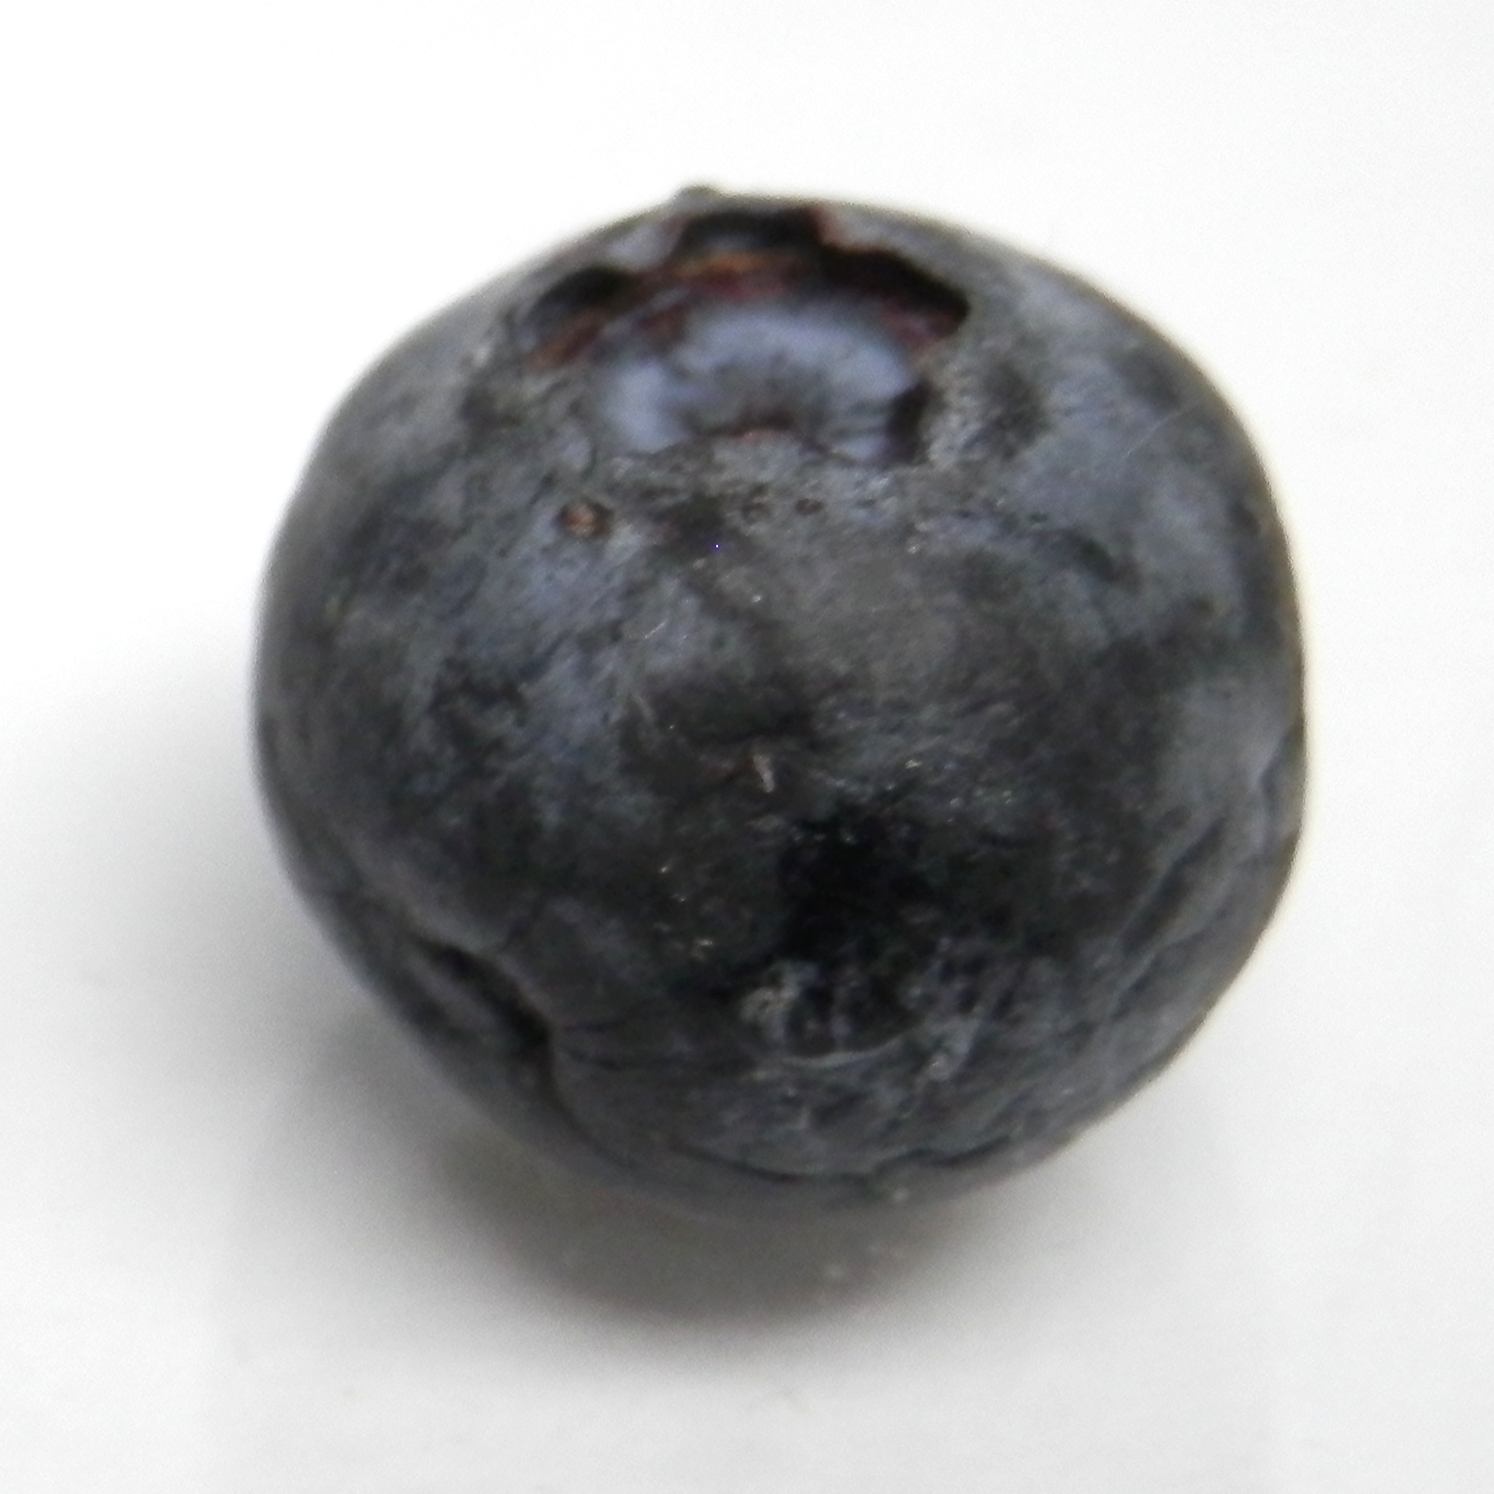 Blueberry organic matter degradation